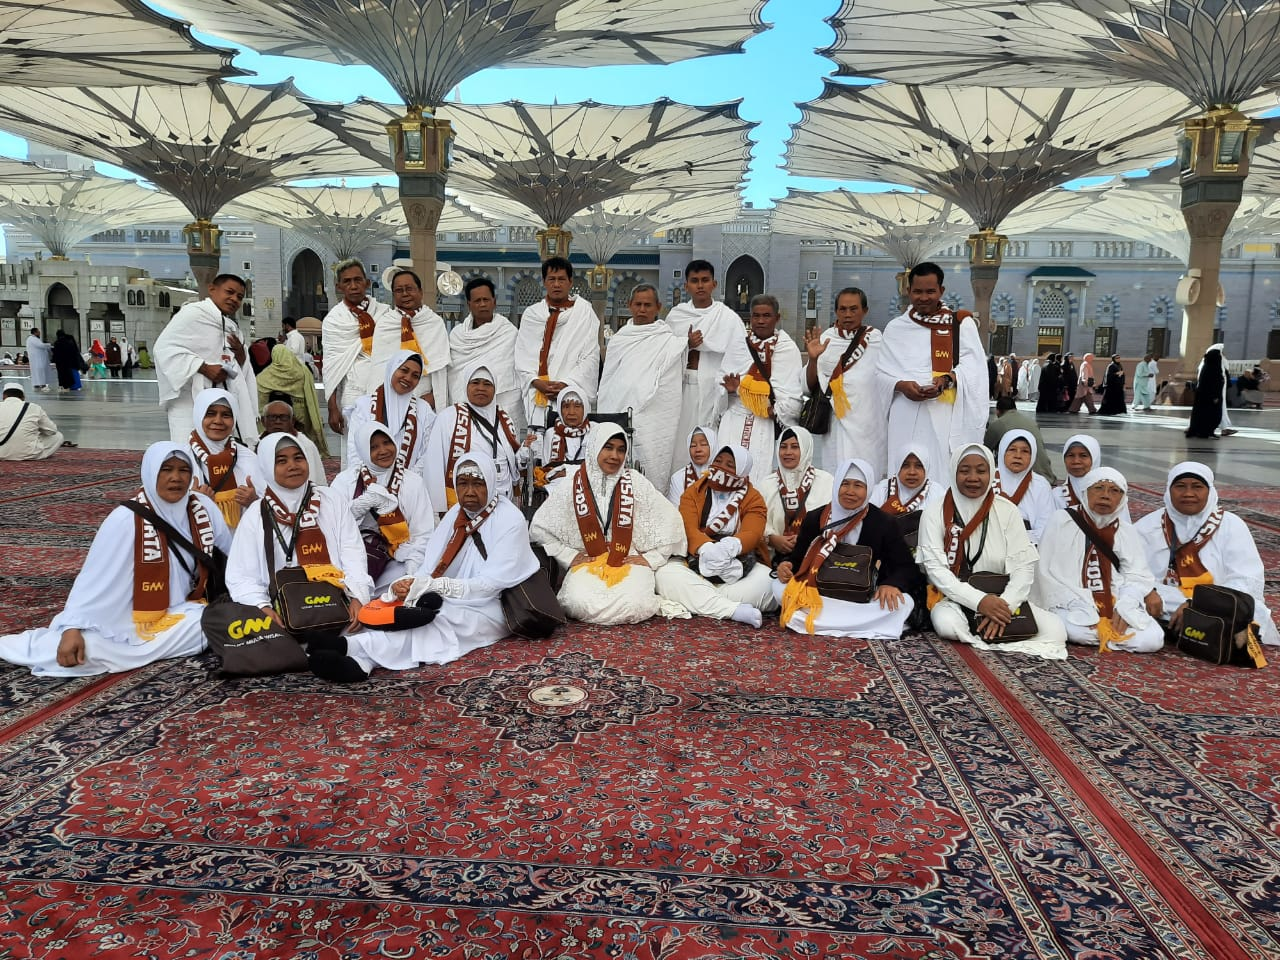 PAKET ARAFAH 1  APRIL 2020 BY SAUDY AIRLINES